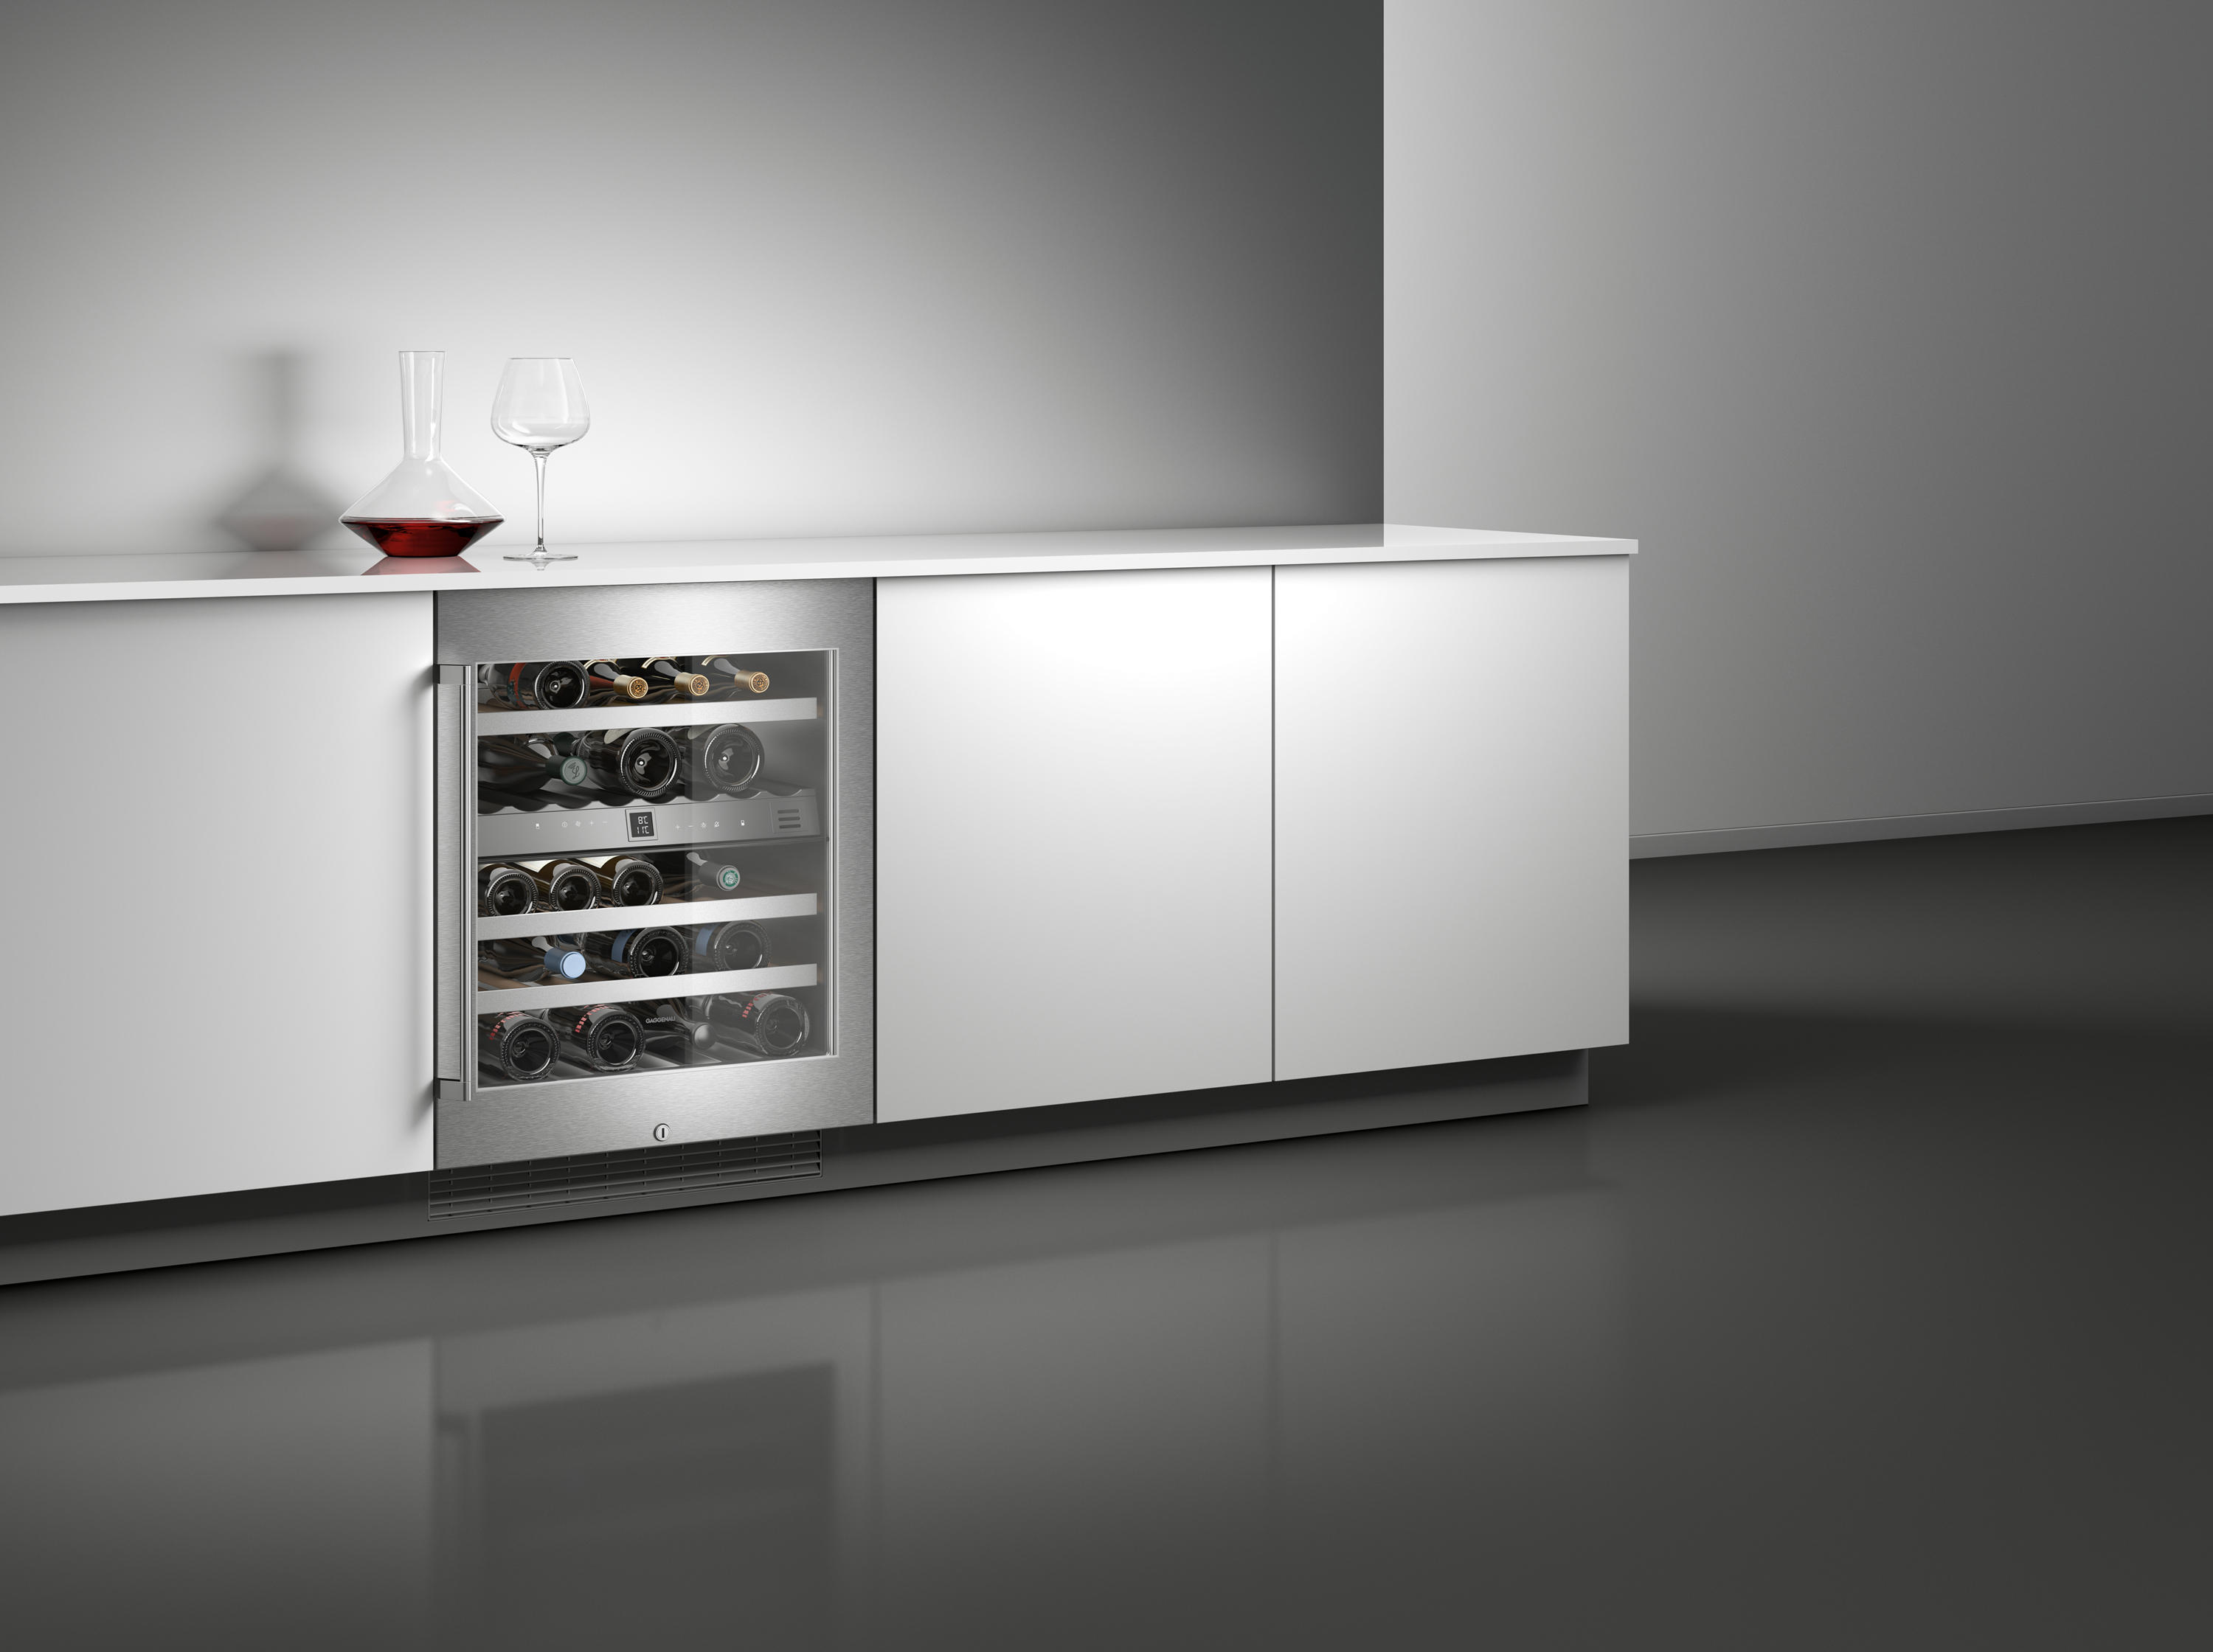 conservador de vino vario serie 400 rw 464 rw 414 frigor ficos neveras de gaggenau. Black Bedroom Furniture Sets. Home Design Ideas